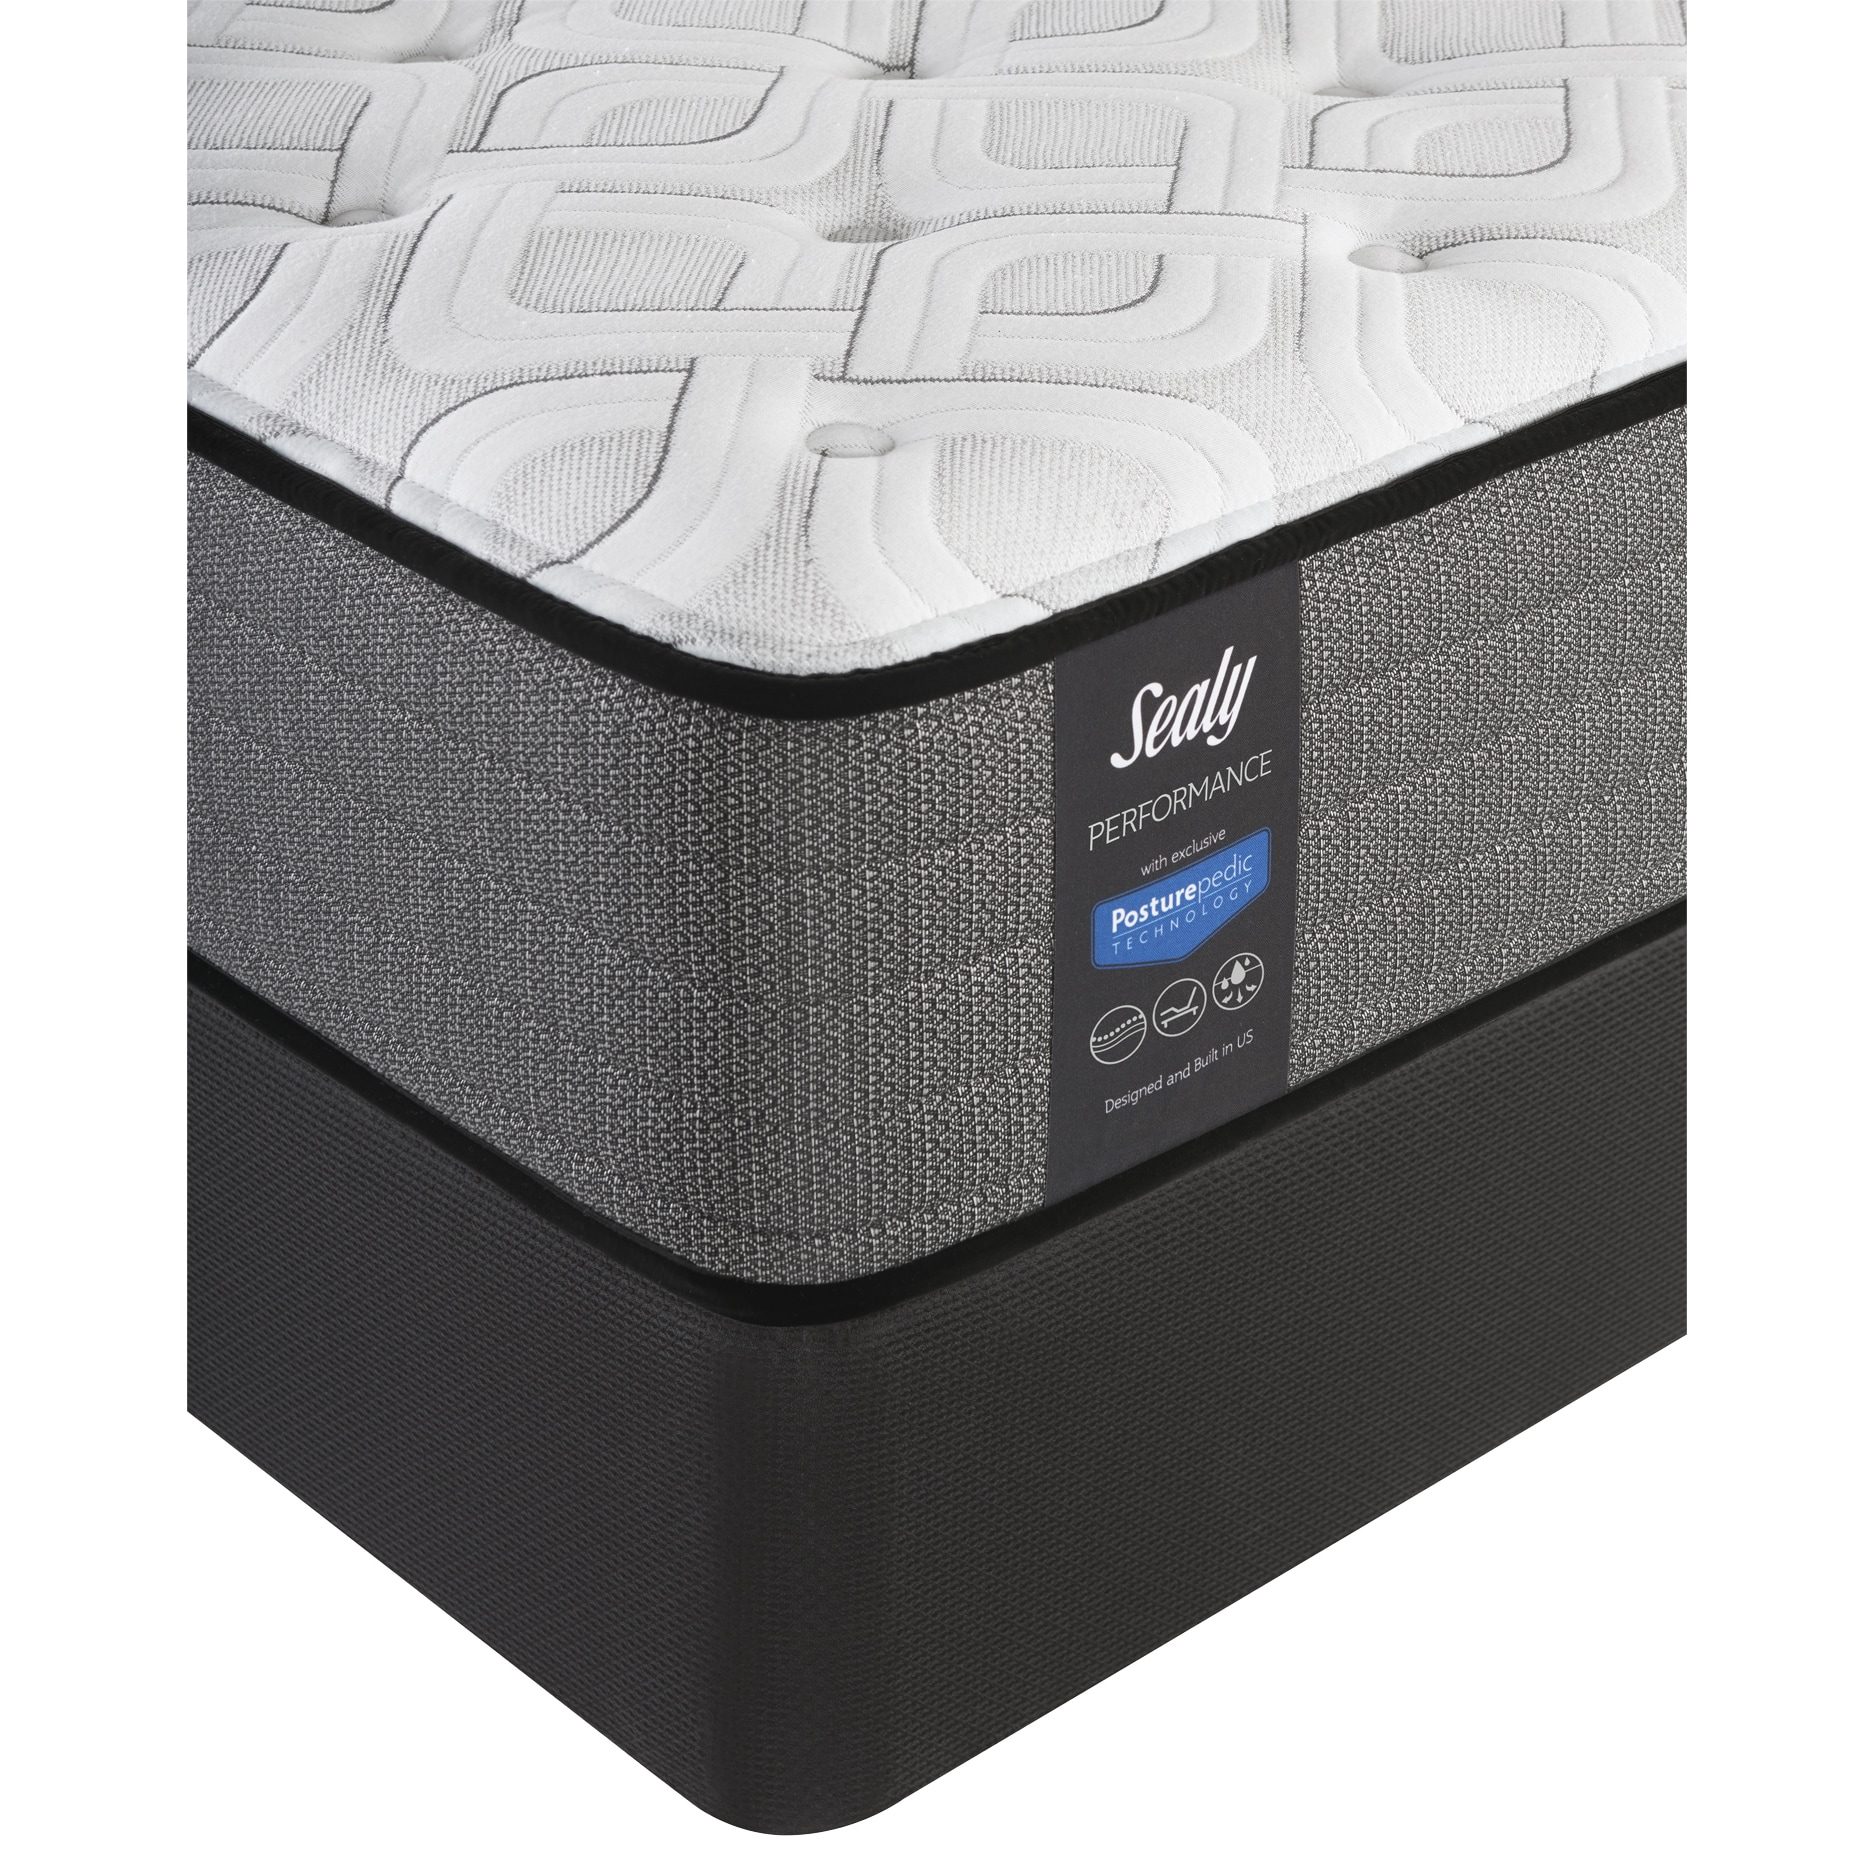 sealy response performance 12 5 inch cushion firm full size mattress set